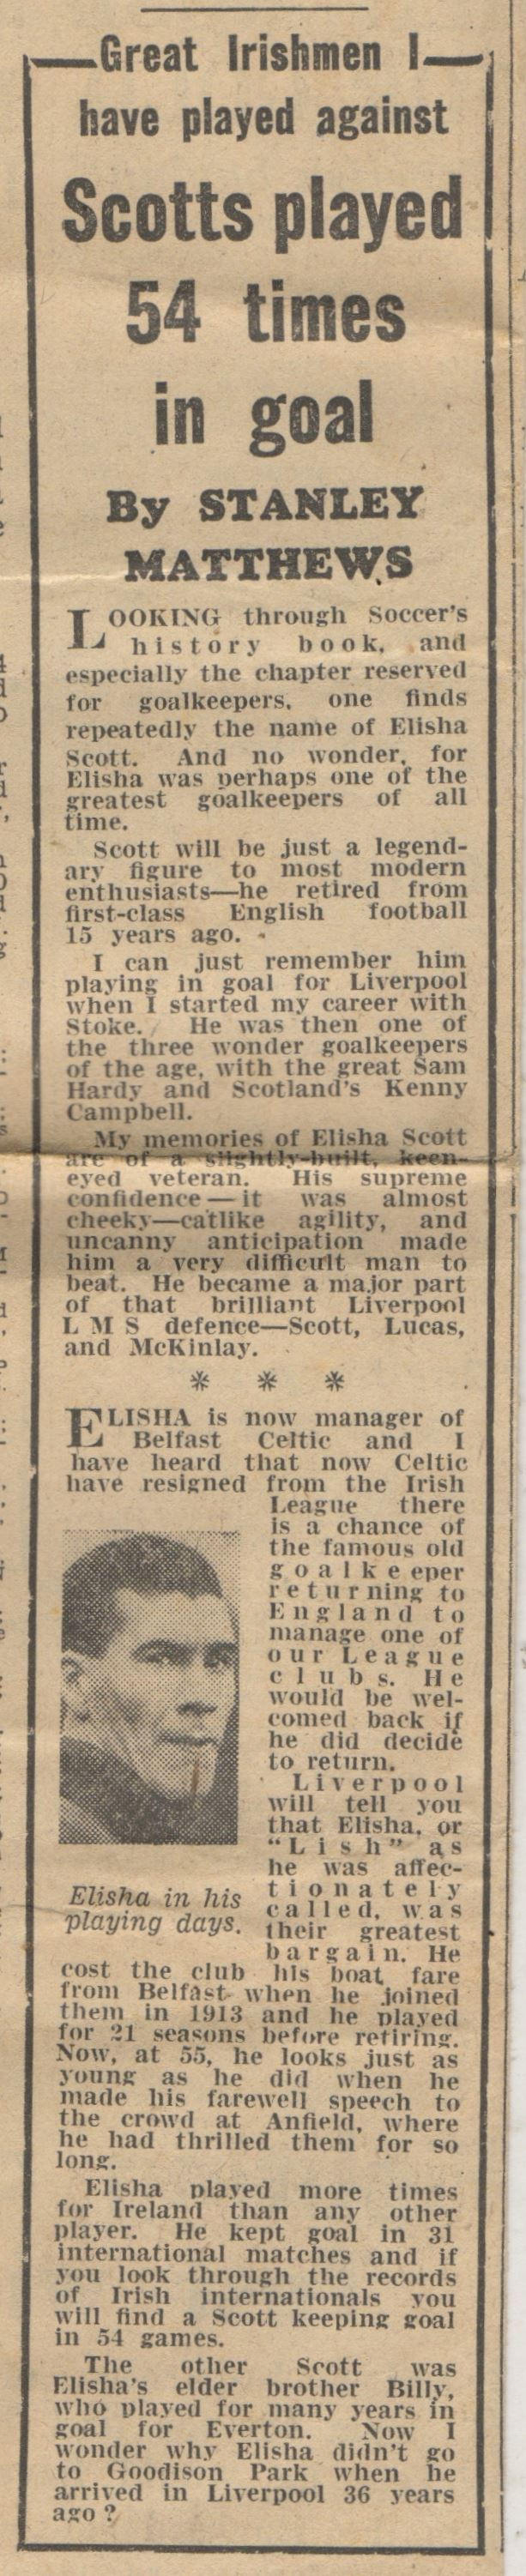 Great Irishmen I have played against, by Sir Stanley Matthews - 1949